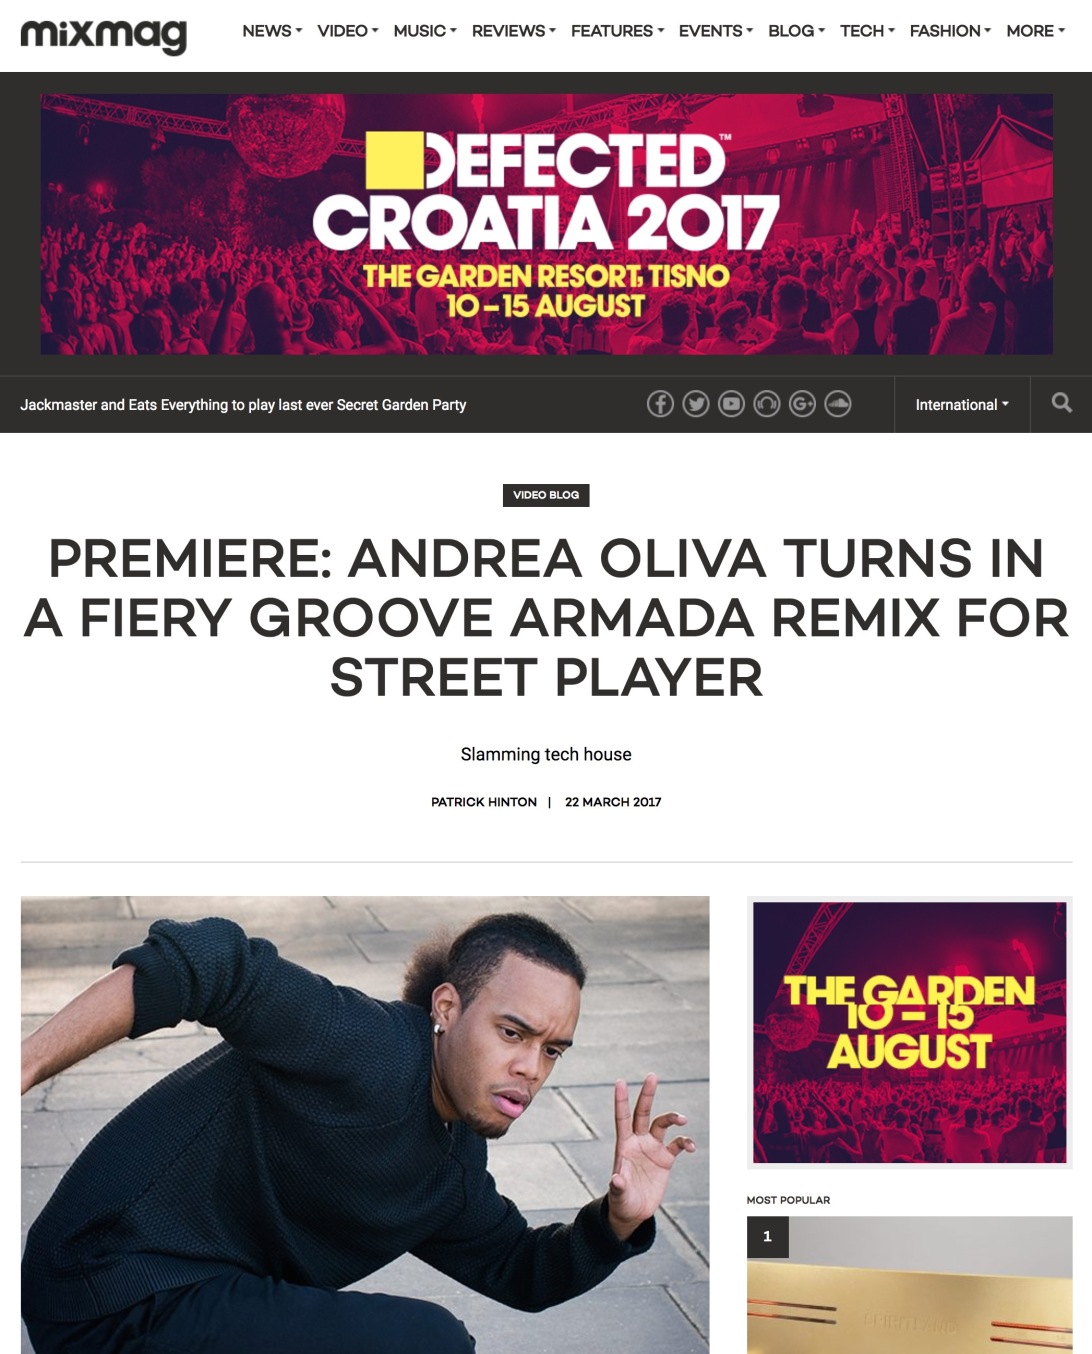 screencapture-mixmag-net-read-premiere-andrea-oliva-turns-in-a-fiery-groove-armada-remix-for-street-player-video-blog-1490703718947.jpg